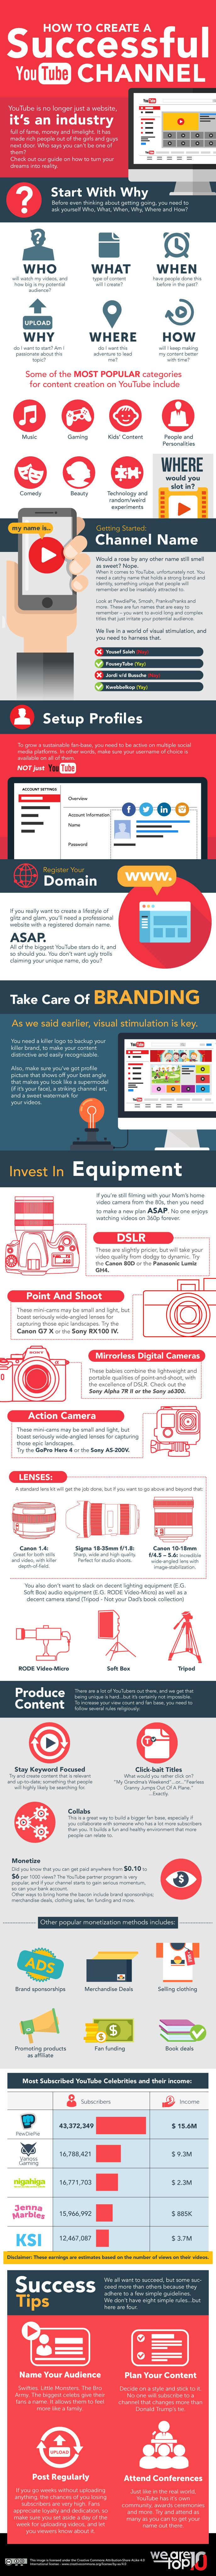 YouTube viewership is now finally taking over the traditional television industry. But, what is even more exciting is that YouTube is open to everyone and anyone can start uploading videos. Want your YouTube channel to be successful? Check this infographic